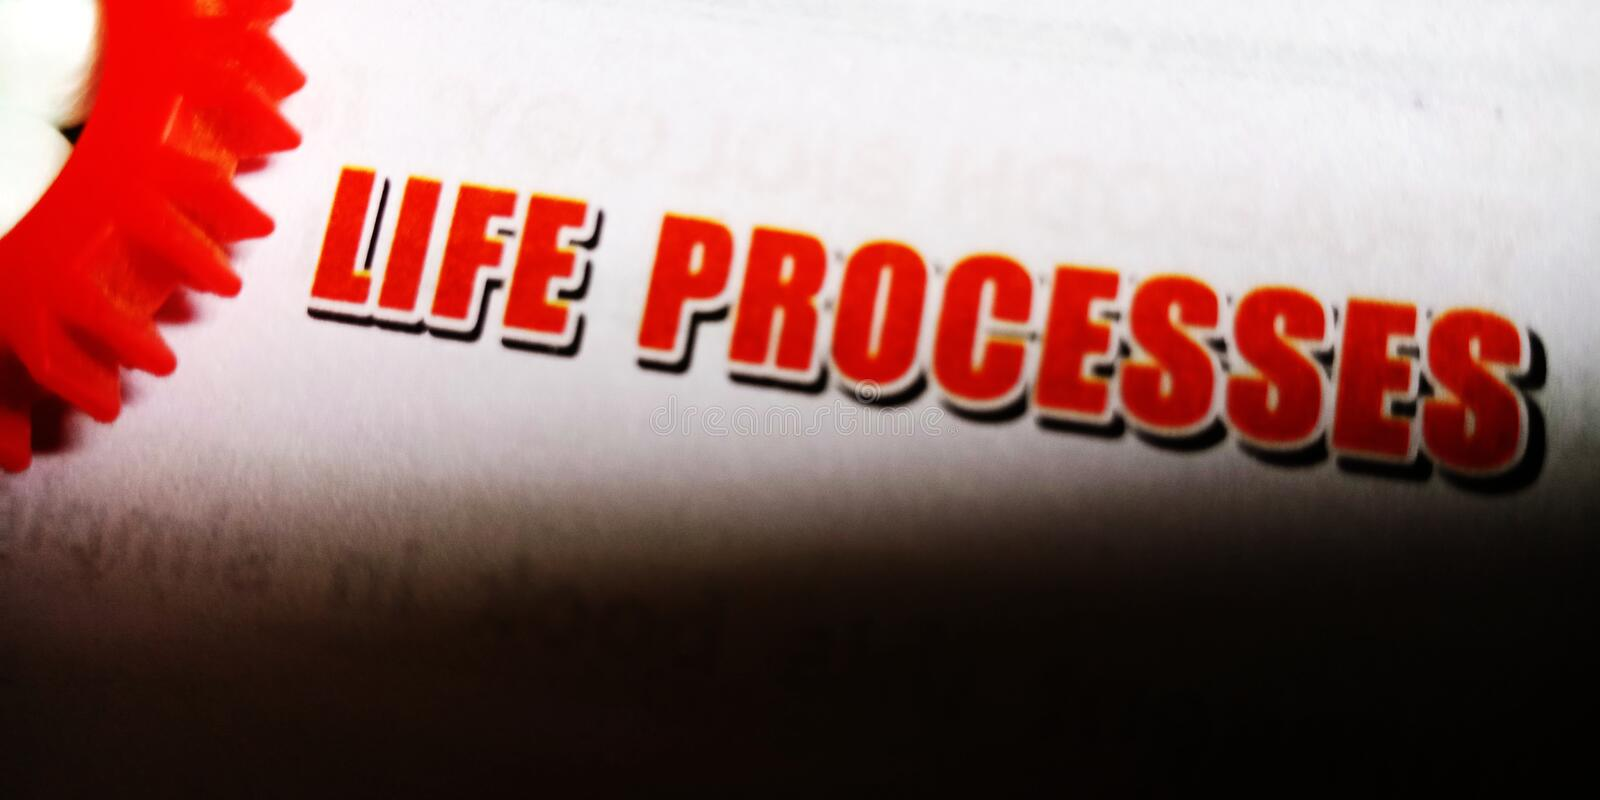 Life processes written on red colour text on white paper sheet royalty free stock photography